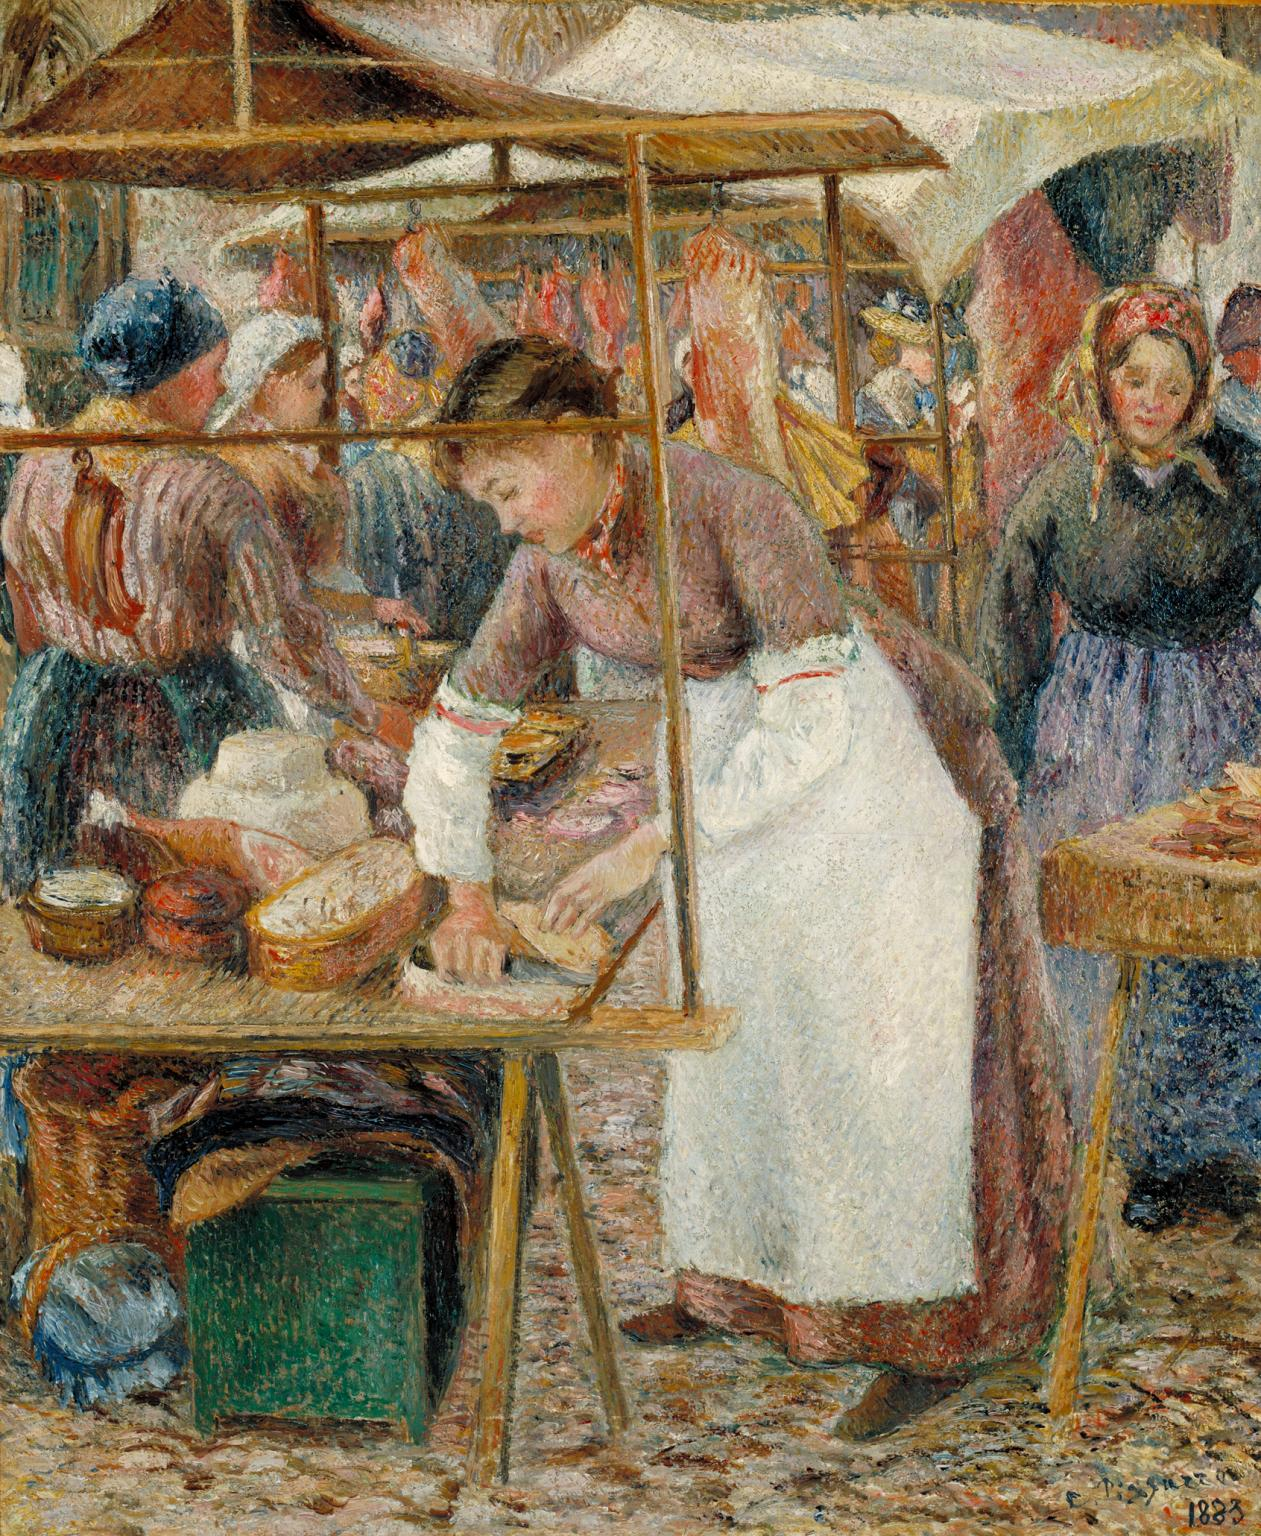 The Pork Butcher 1883 Camille Pissarro 1830-1903 Bequeathed by Lucien Pissarro, the artist's son 1944 Tate.org.uk